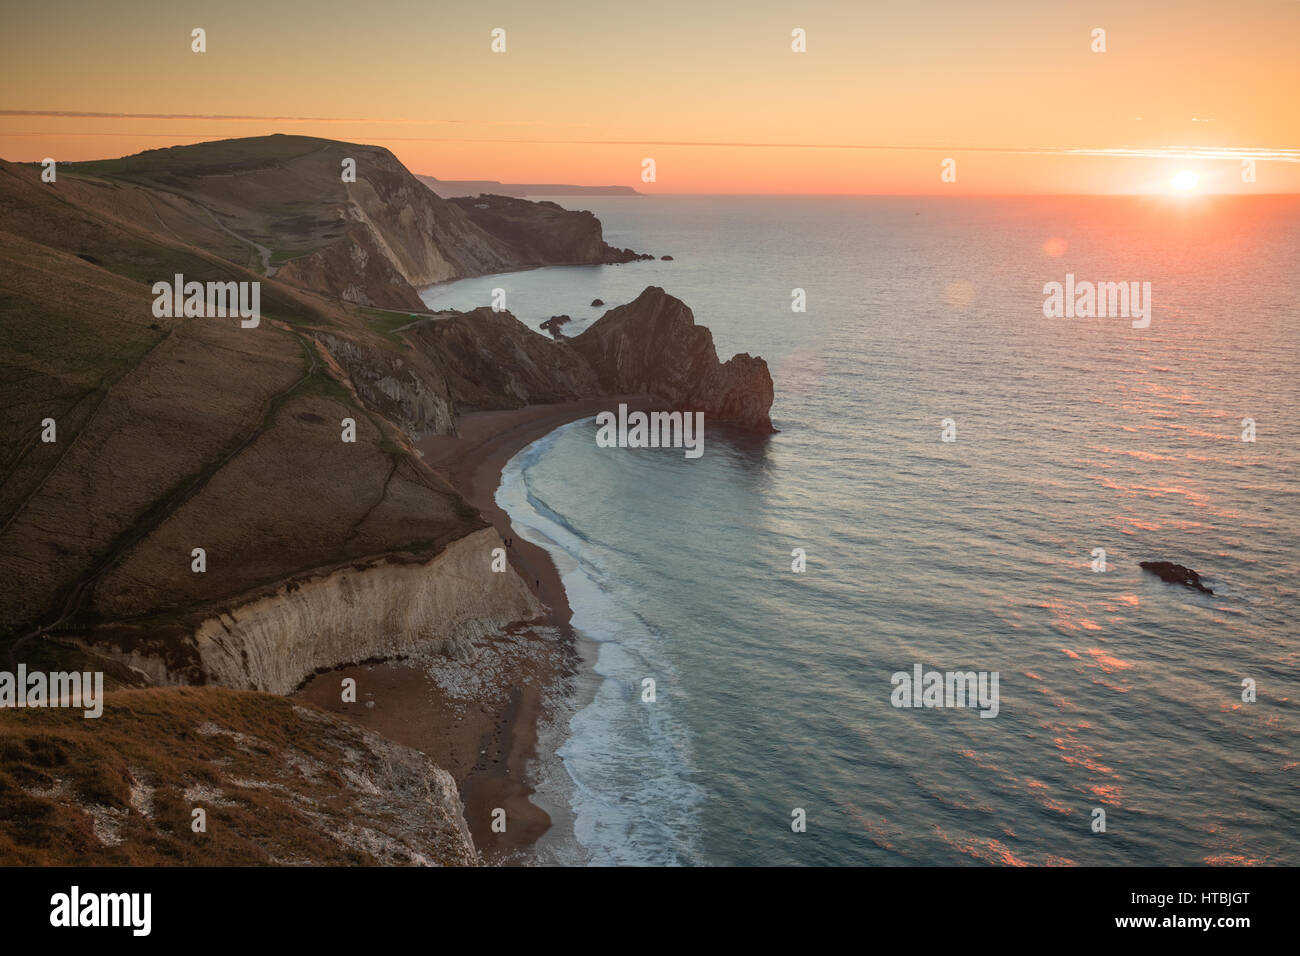 Durdle Door and St Oswald's Bay from Swyre Head at dawn, Purbeck, Jurassic Coast, Dorset, England, UK - Stock Image